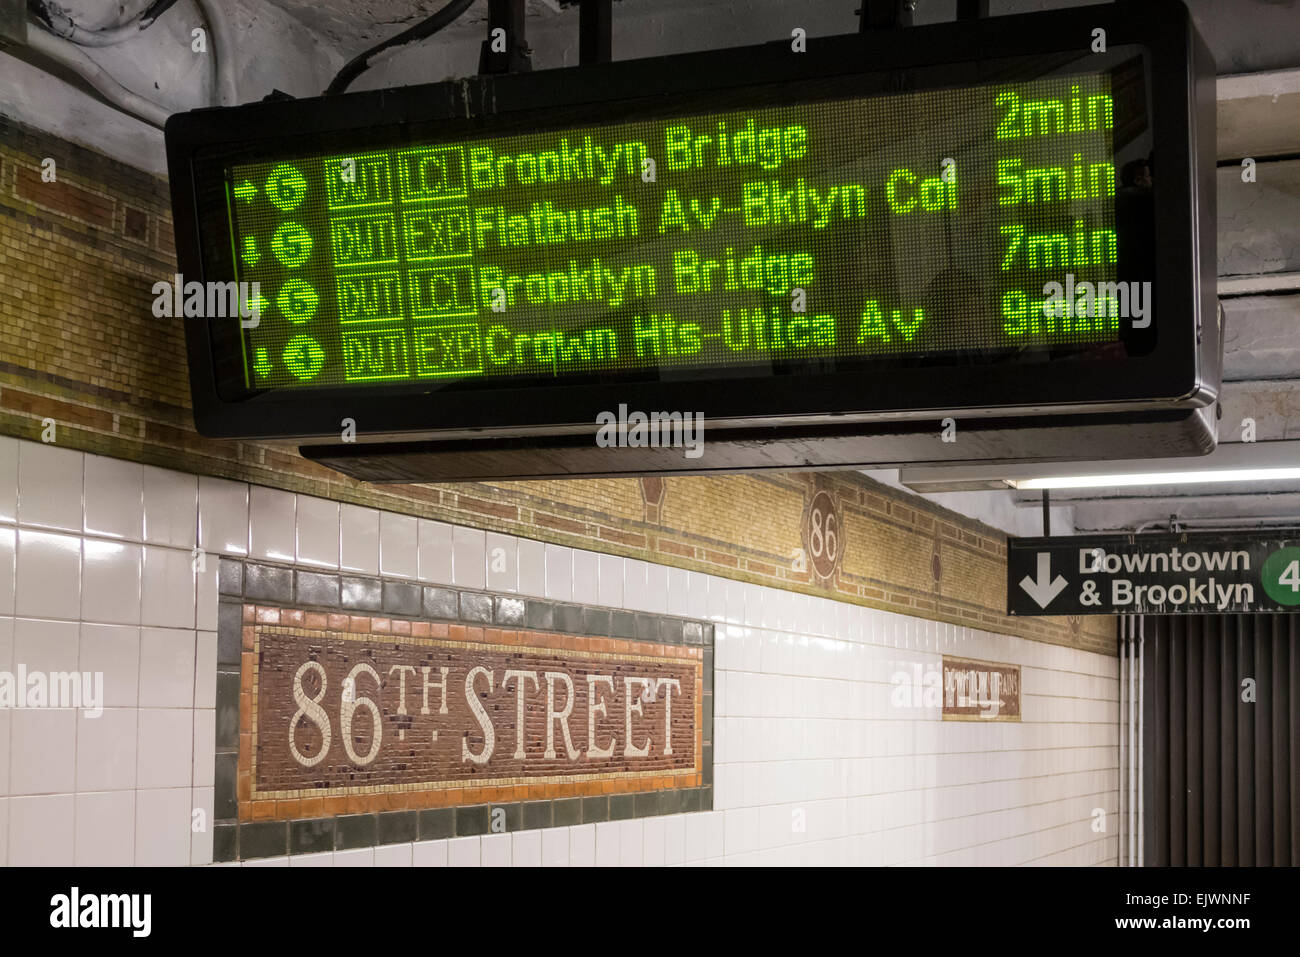 Subway train arrivals schedule shown on a digital readout at East 86th Street station - Stock Image